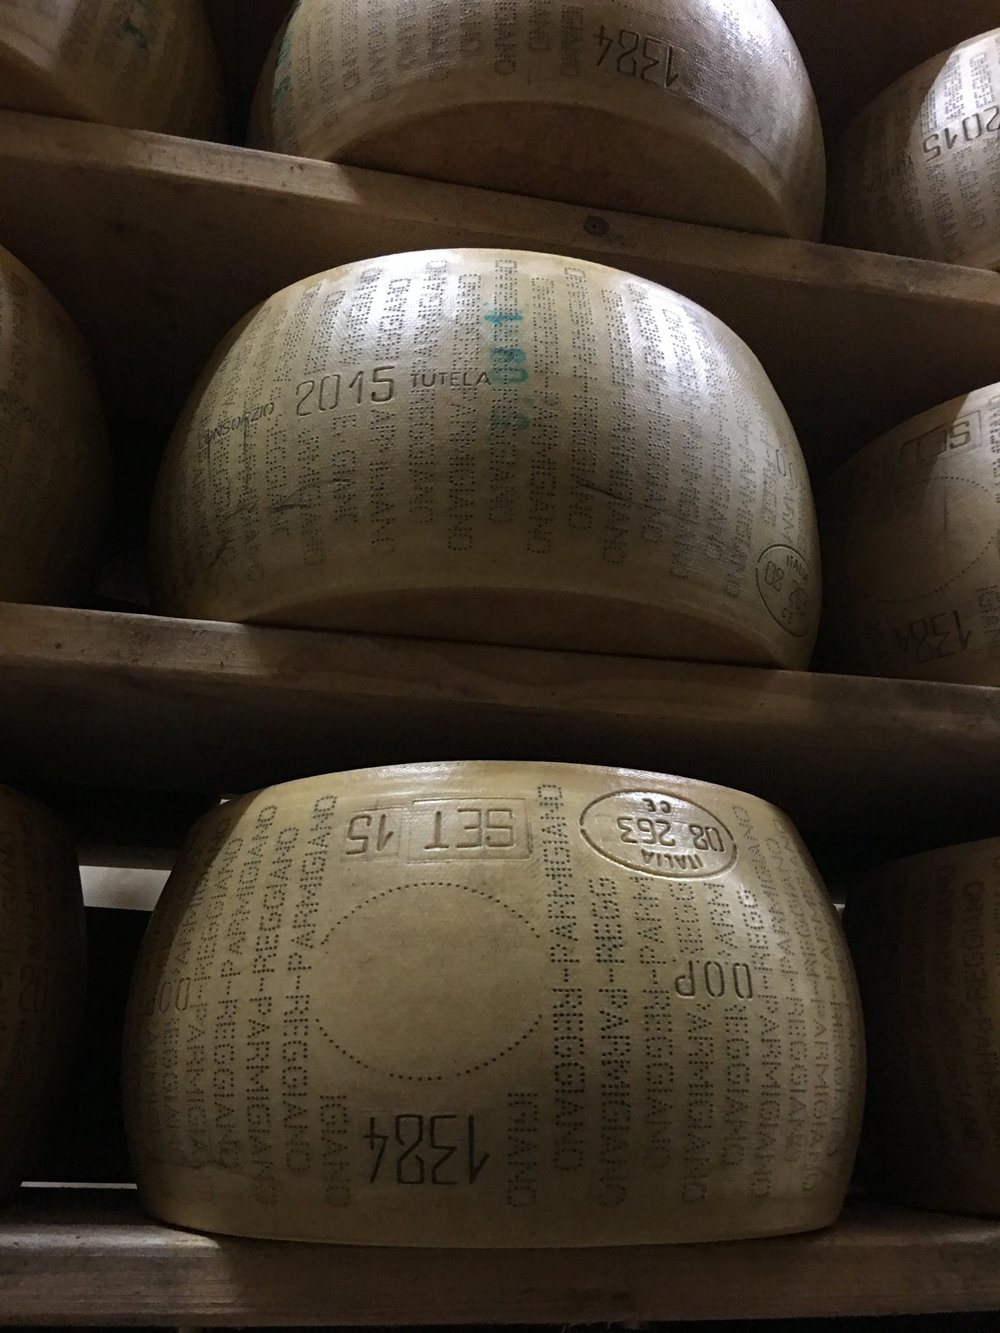 The King of Cheeses, Parmigiano-Reggianno!